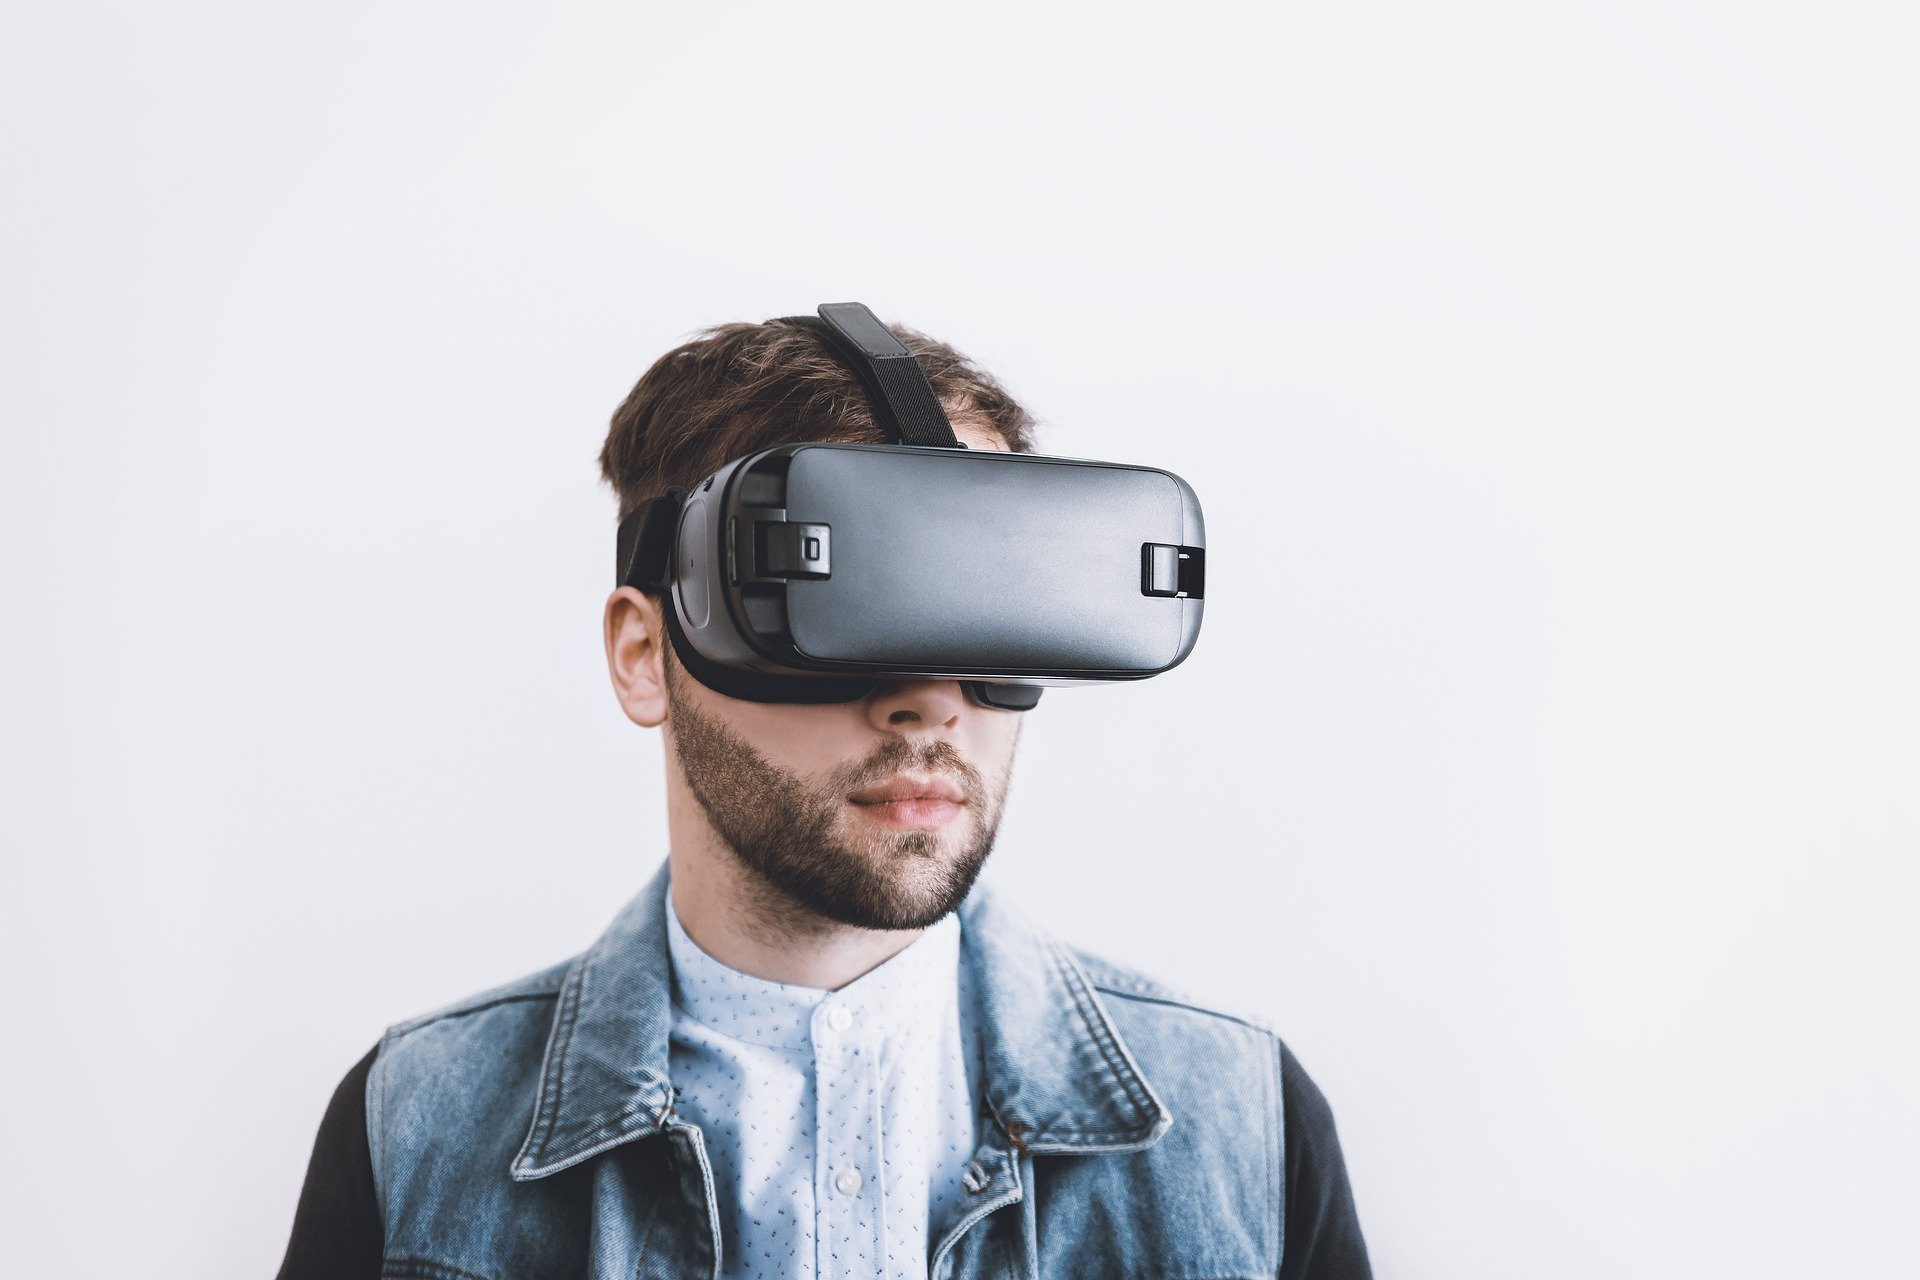 man with vr glasses on learning about addiction recovery.